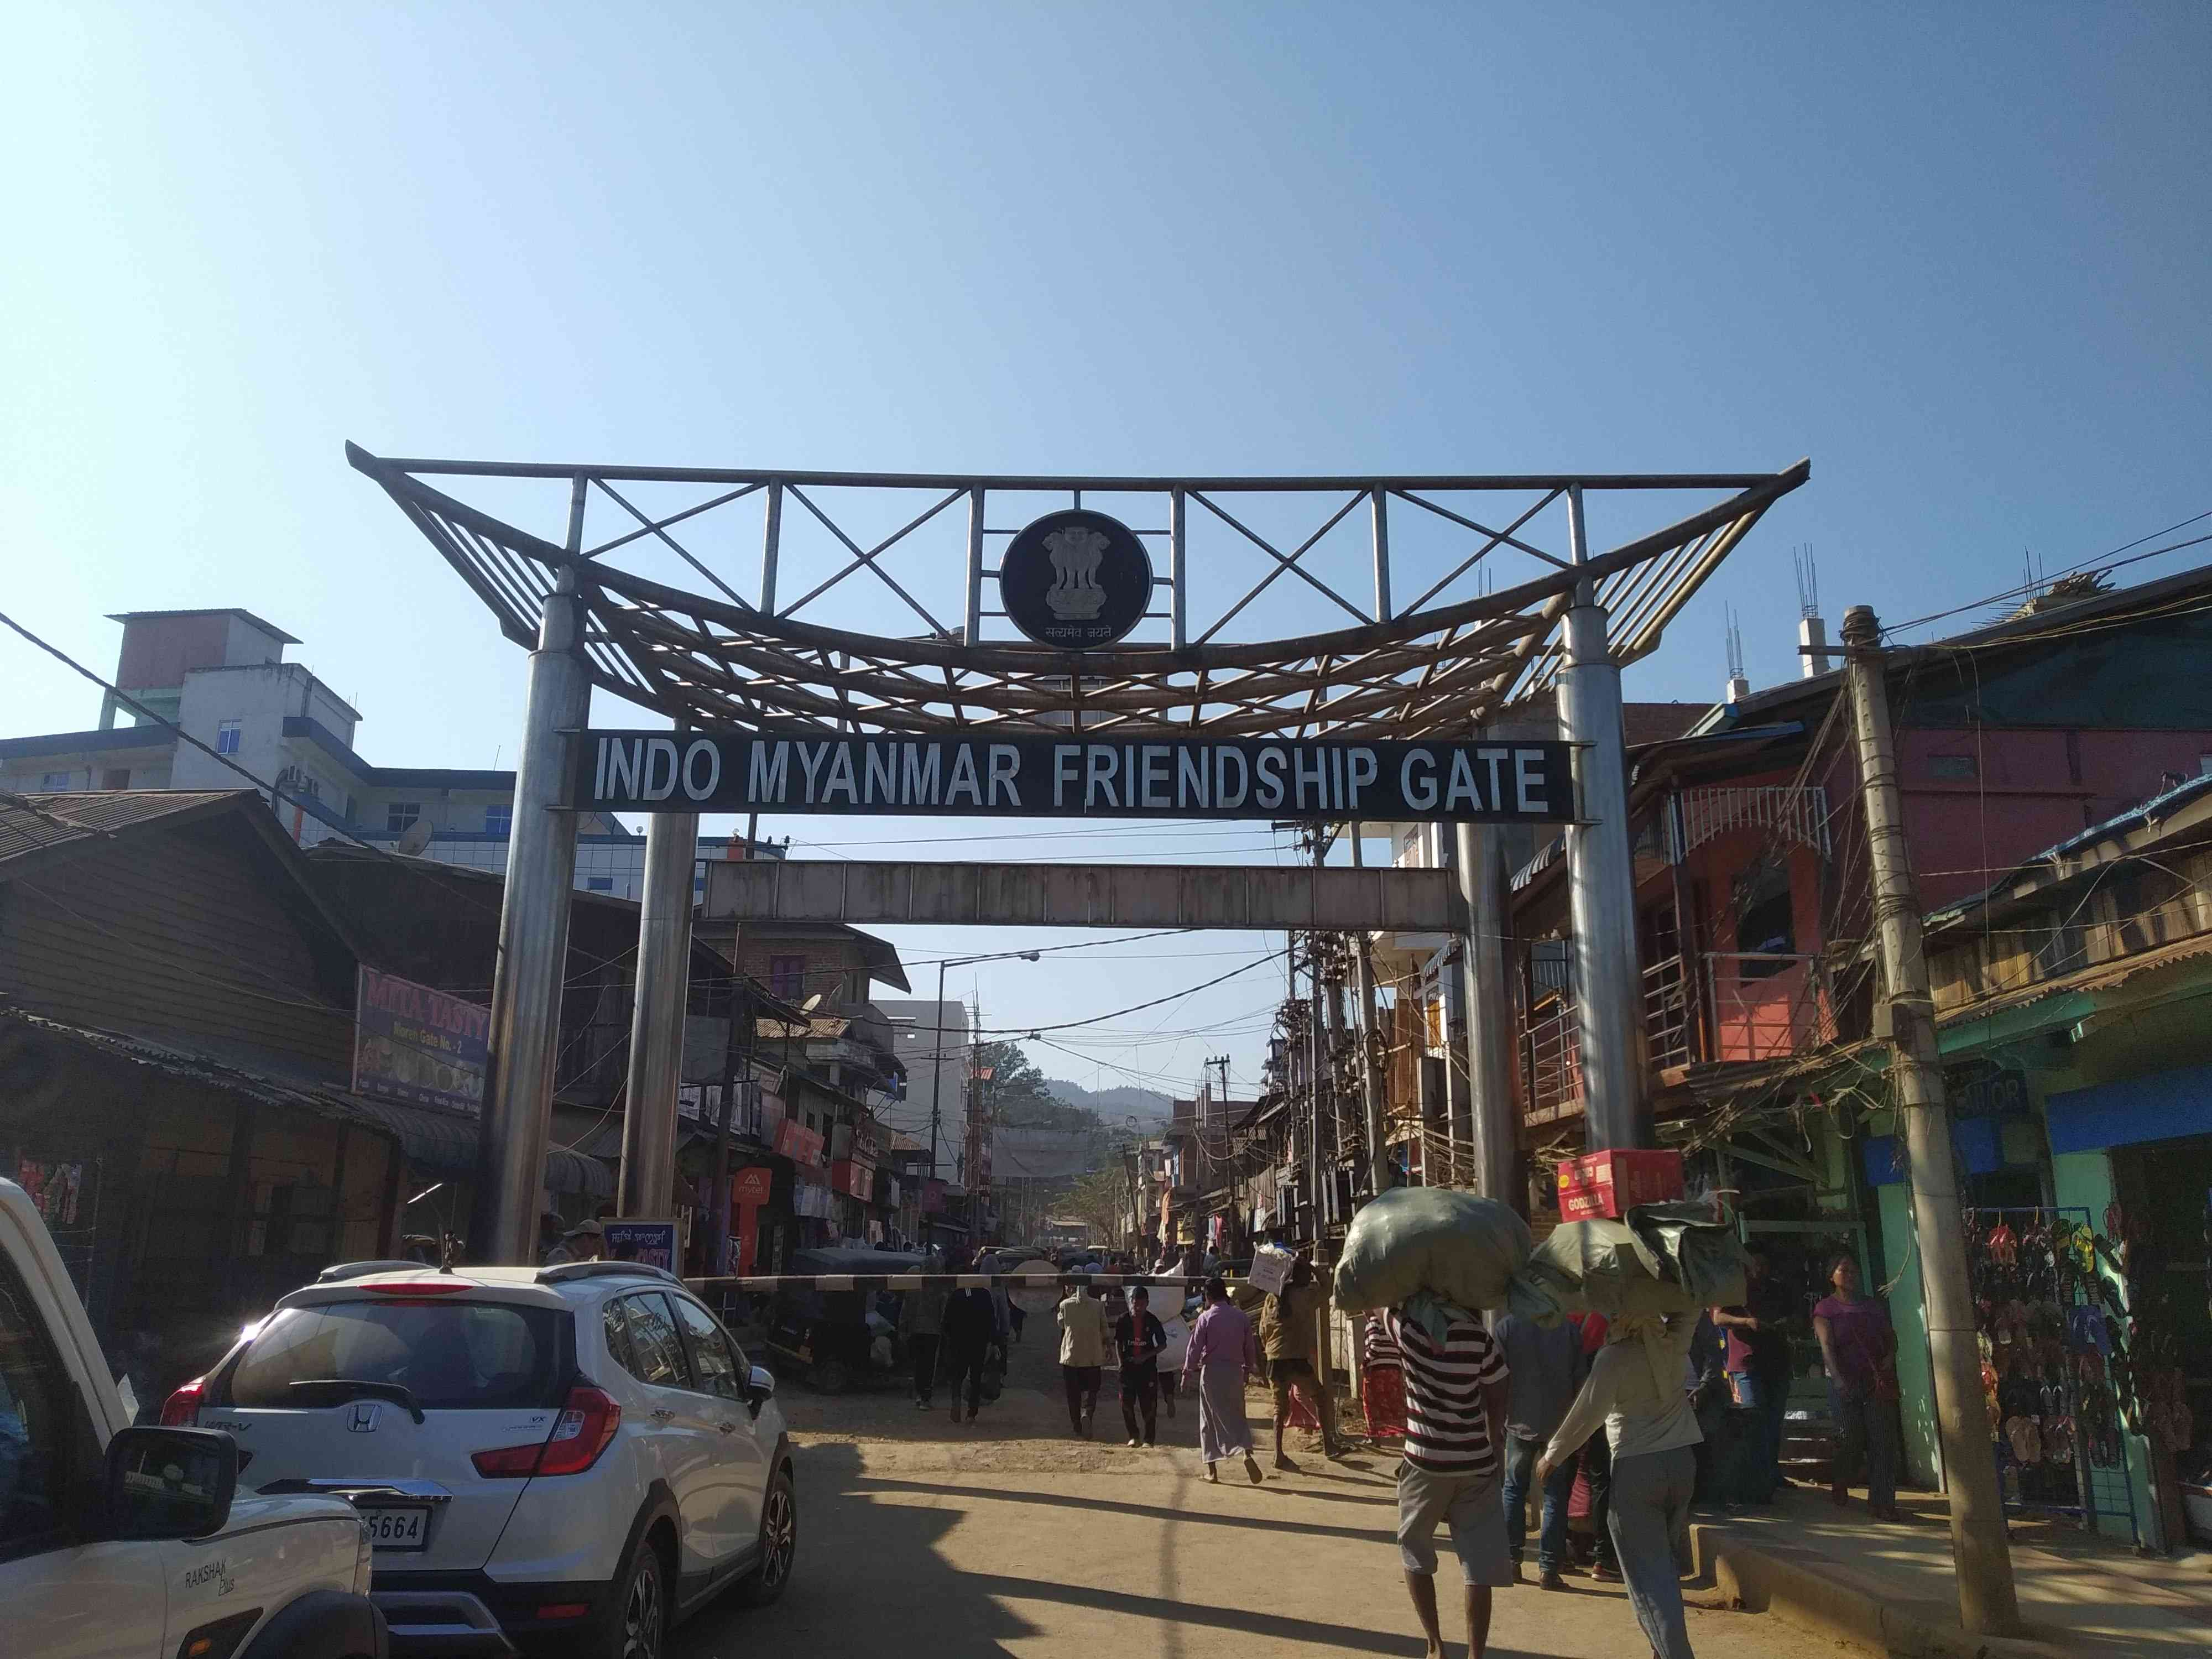 The Indo-Myanmar Friendship Gate separates Moreh and the market township of Namphalong in Burma. Movement is free between 7 am and 4 pm. Photo credit: Arunabh Saikia